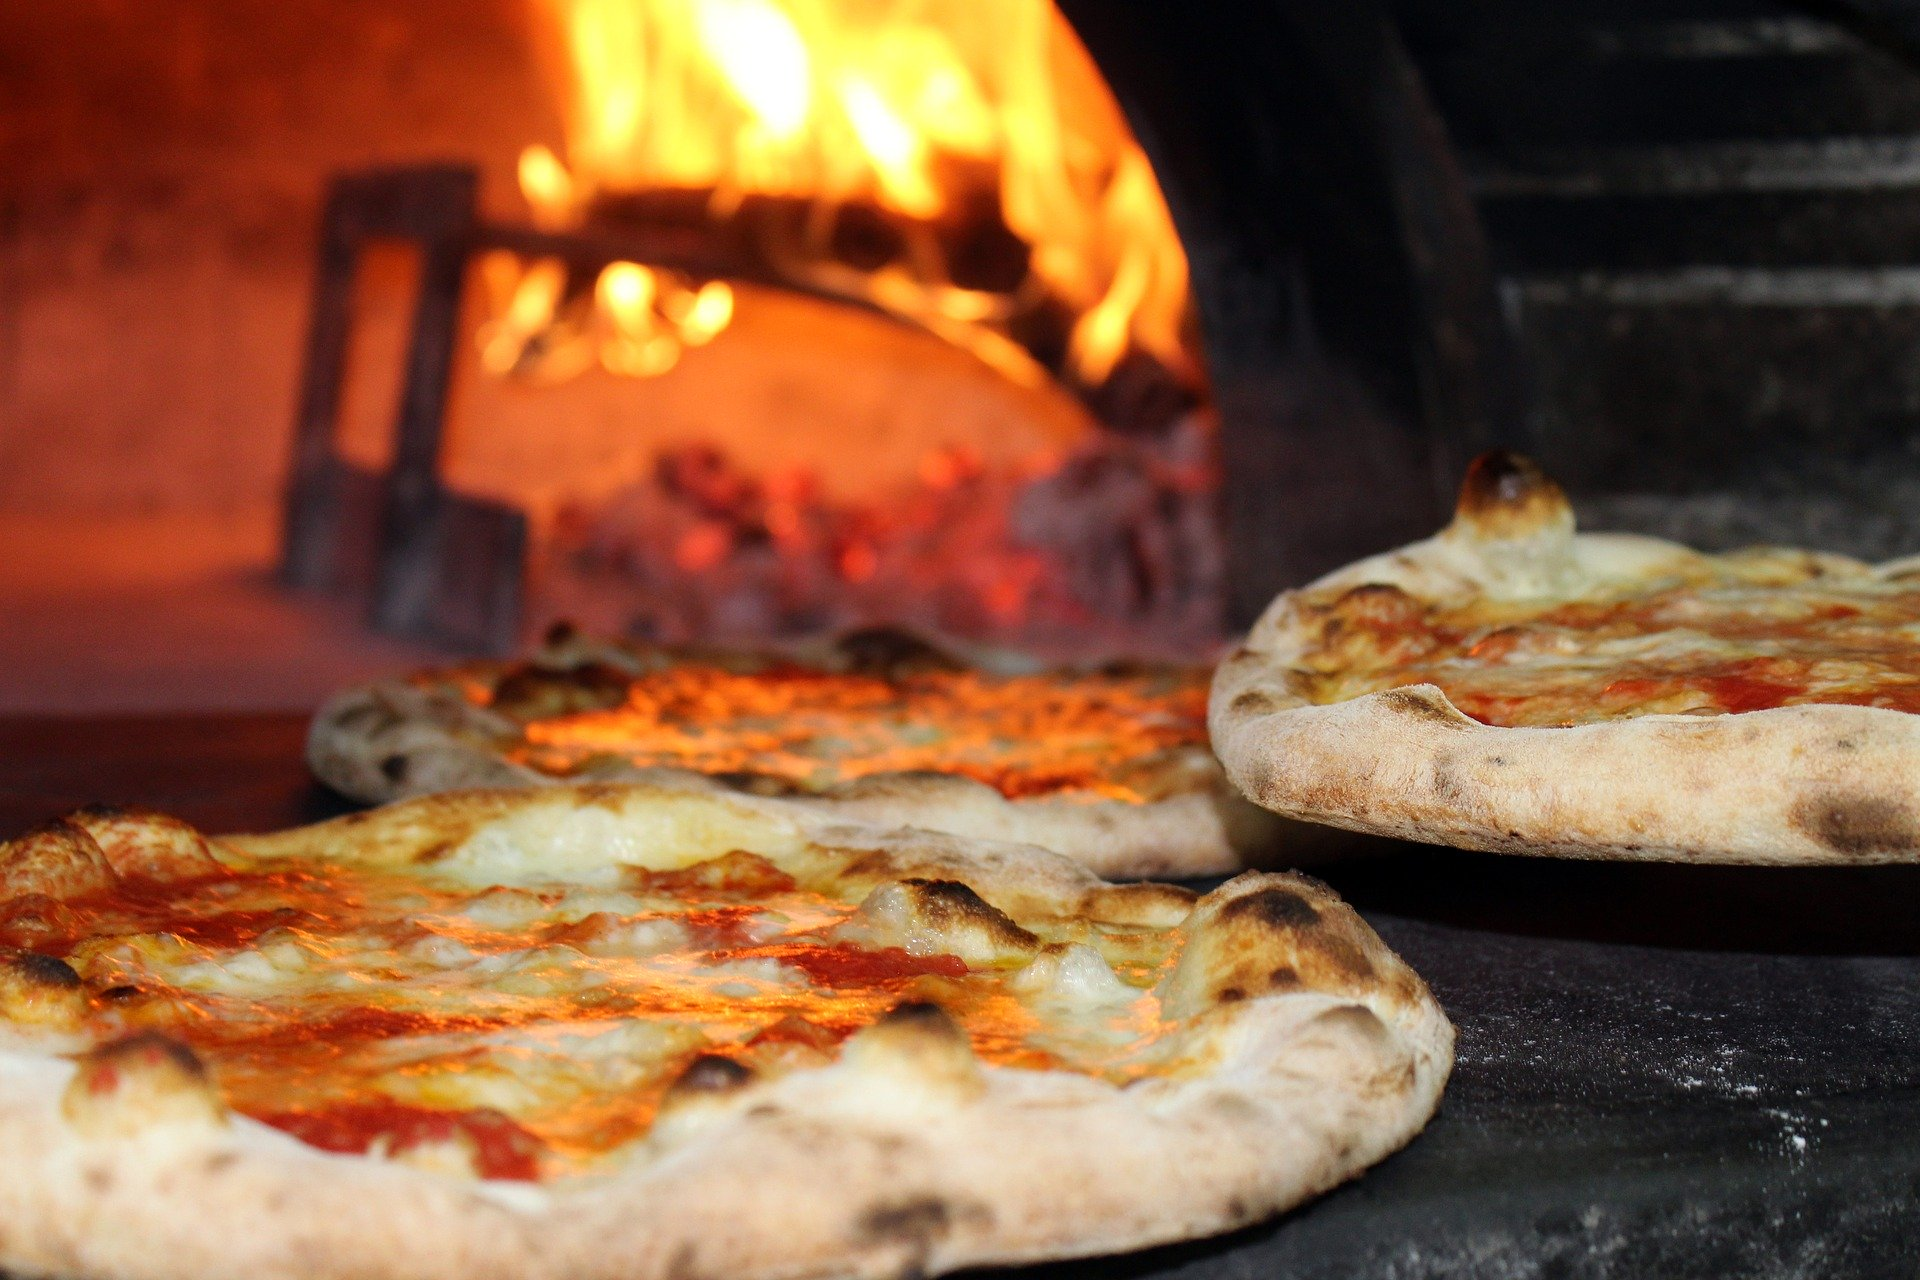 Italy: pizza and happiness